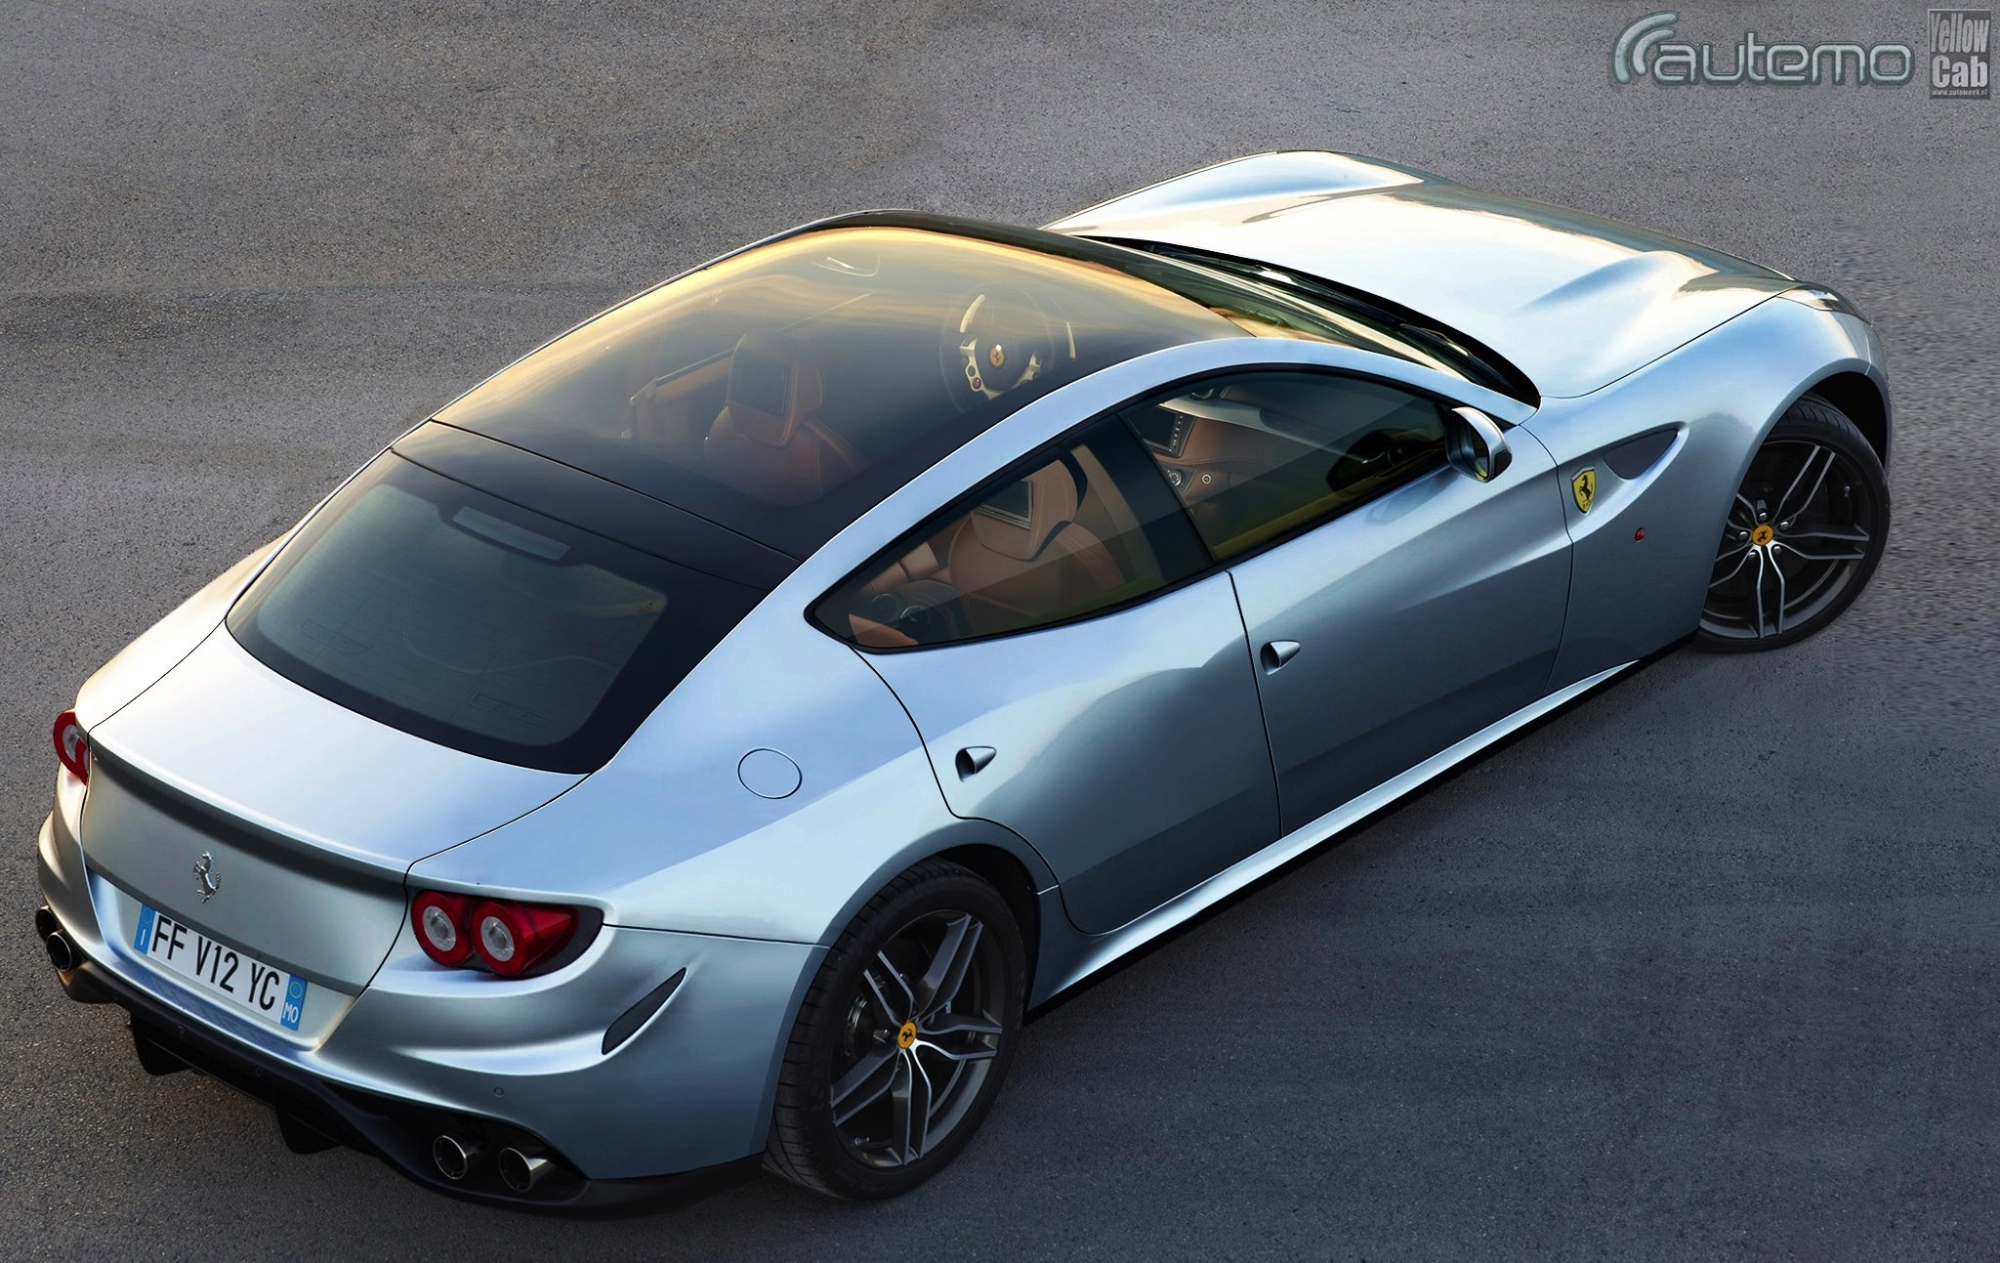 Ferrari Ff Gets Four Doors In New Rendering